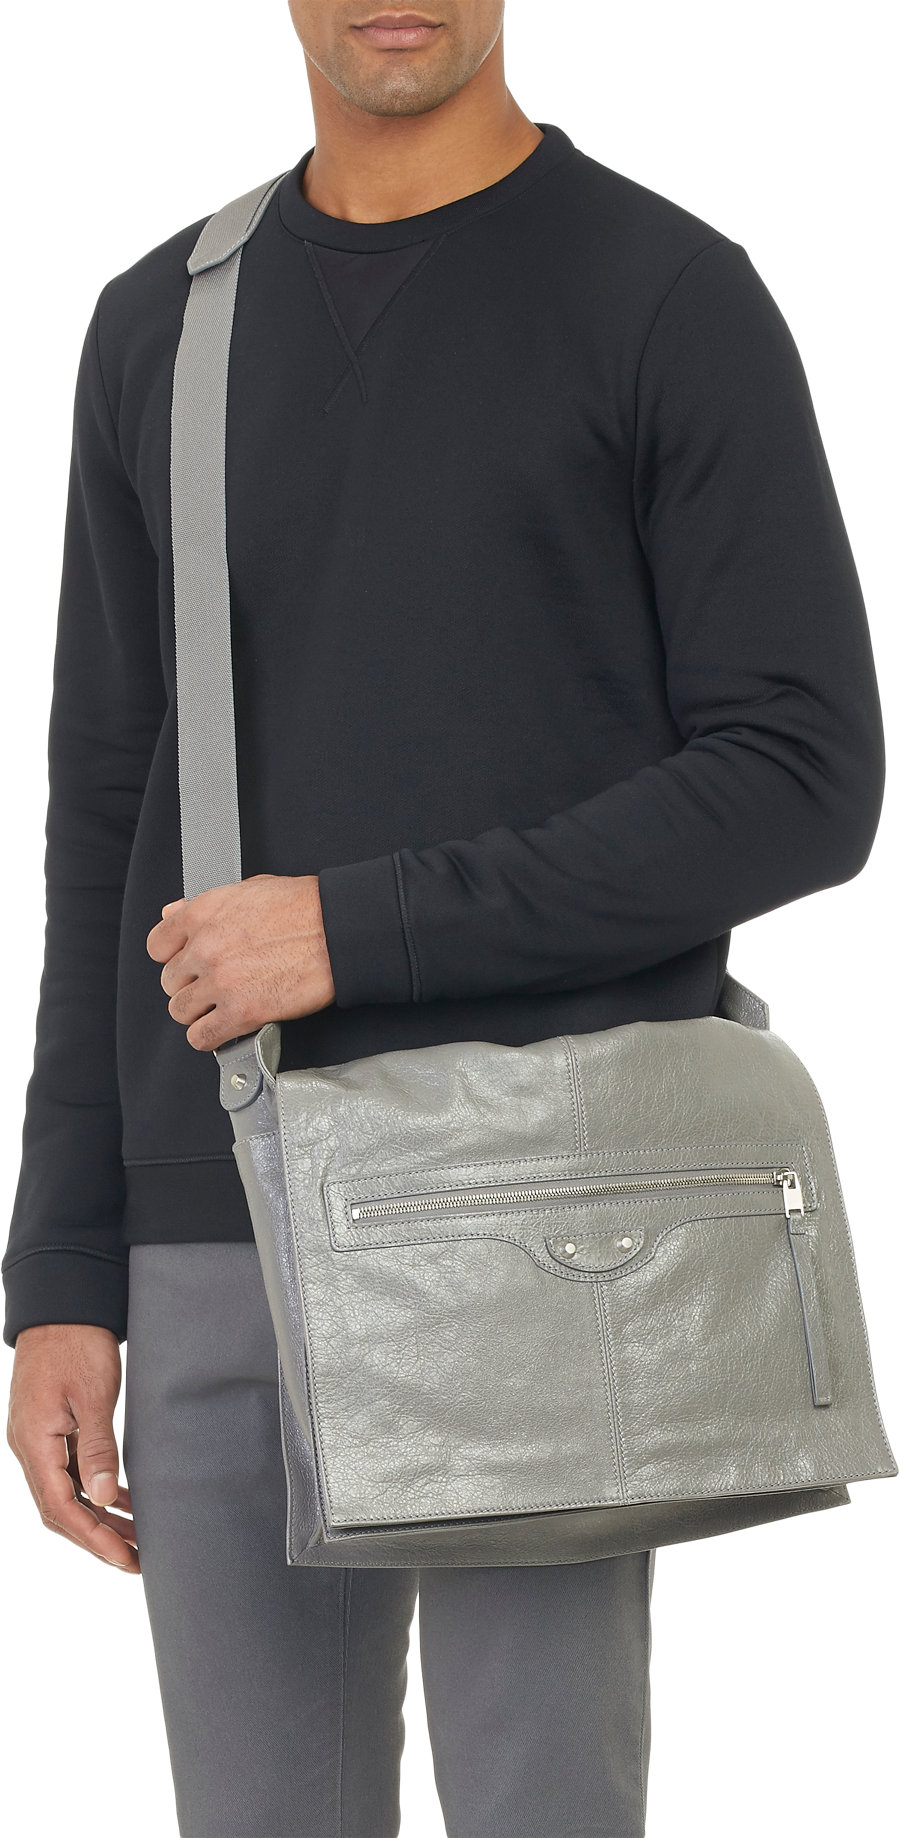 balenciaga messenger bag